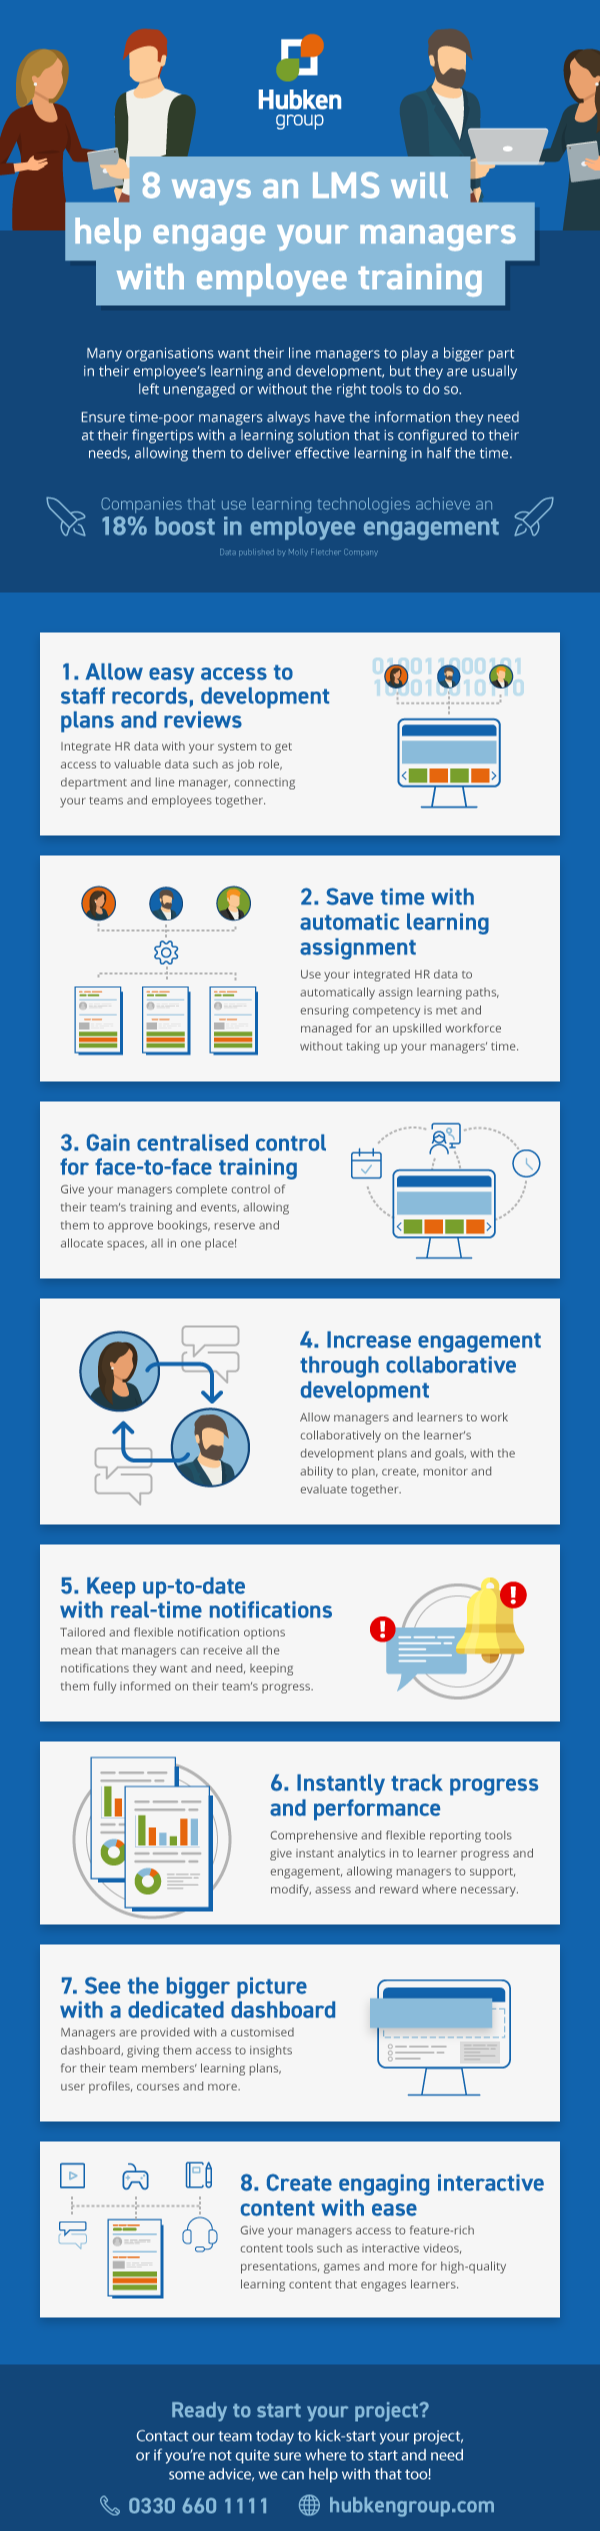 8 Ways an LMS Will Help Engage Your Managers with Employee Training - Hubken Group